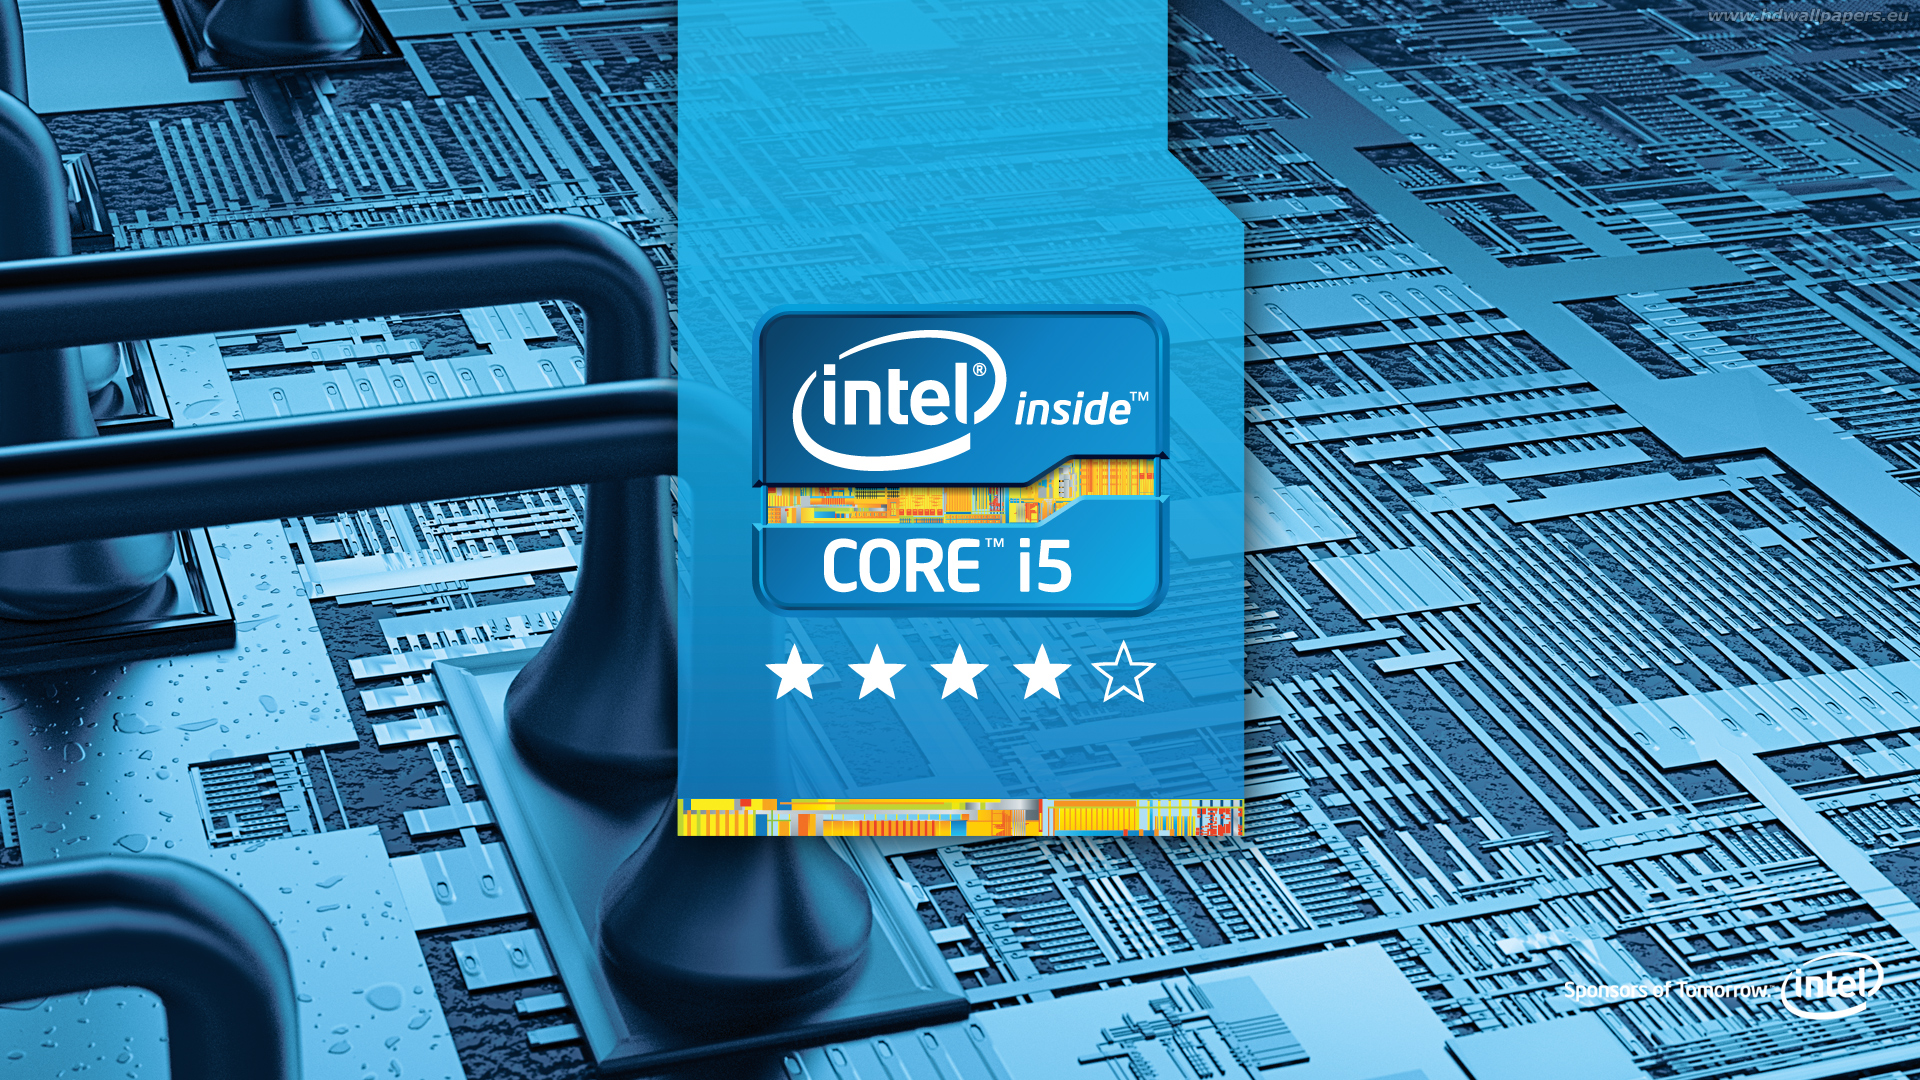 wallpaper-intel-i5-1920x1080-v3